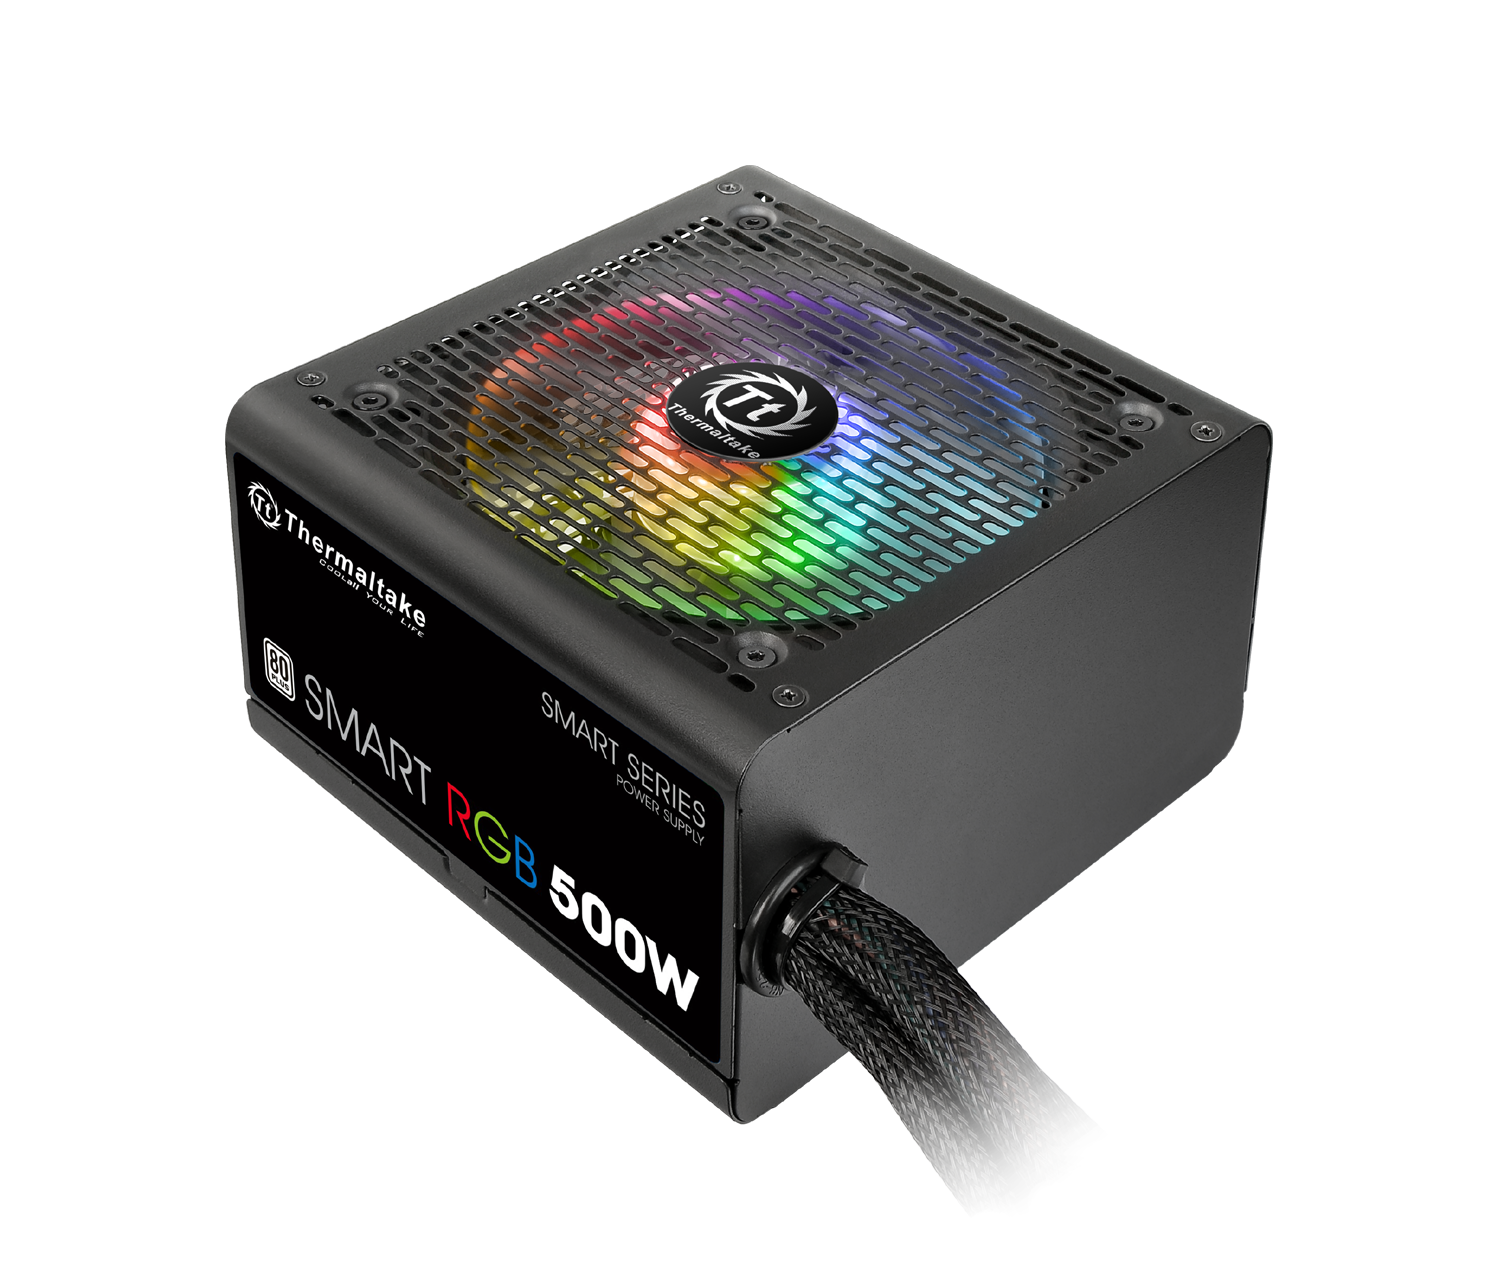 Smart RGB 500W / Thermaltake Technology Co., Ltd.